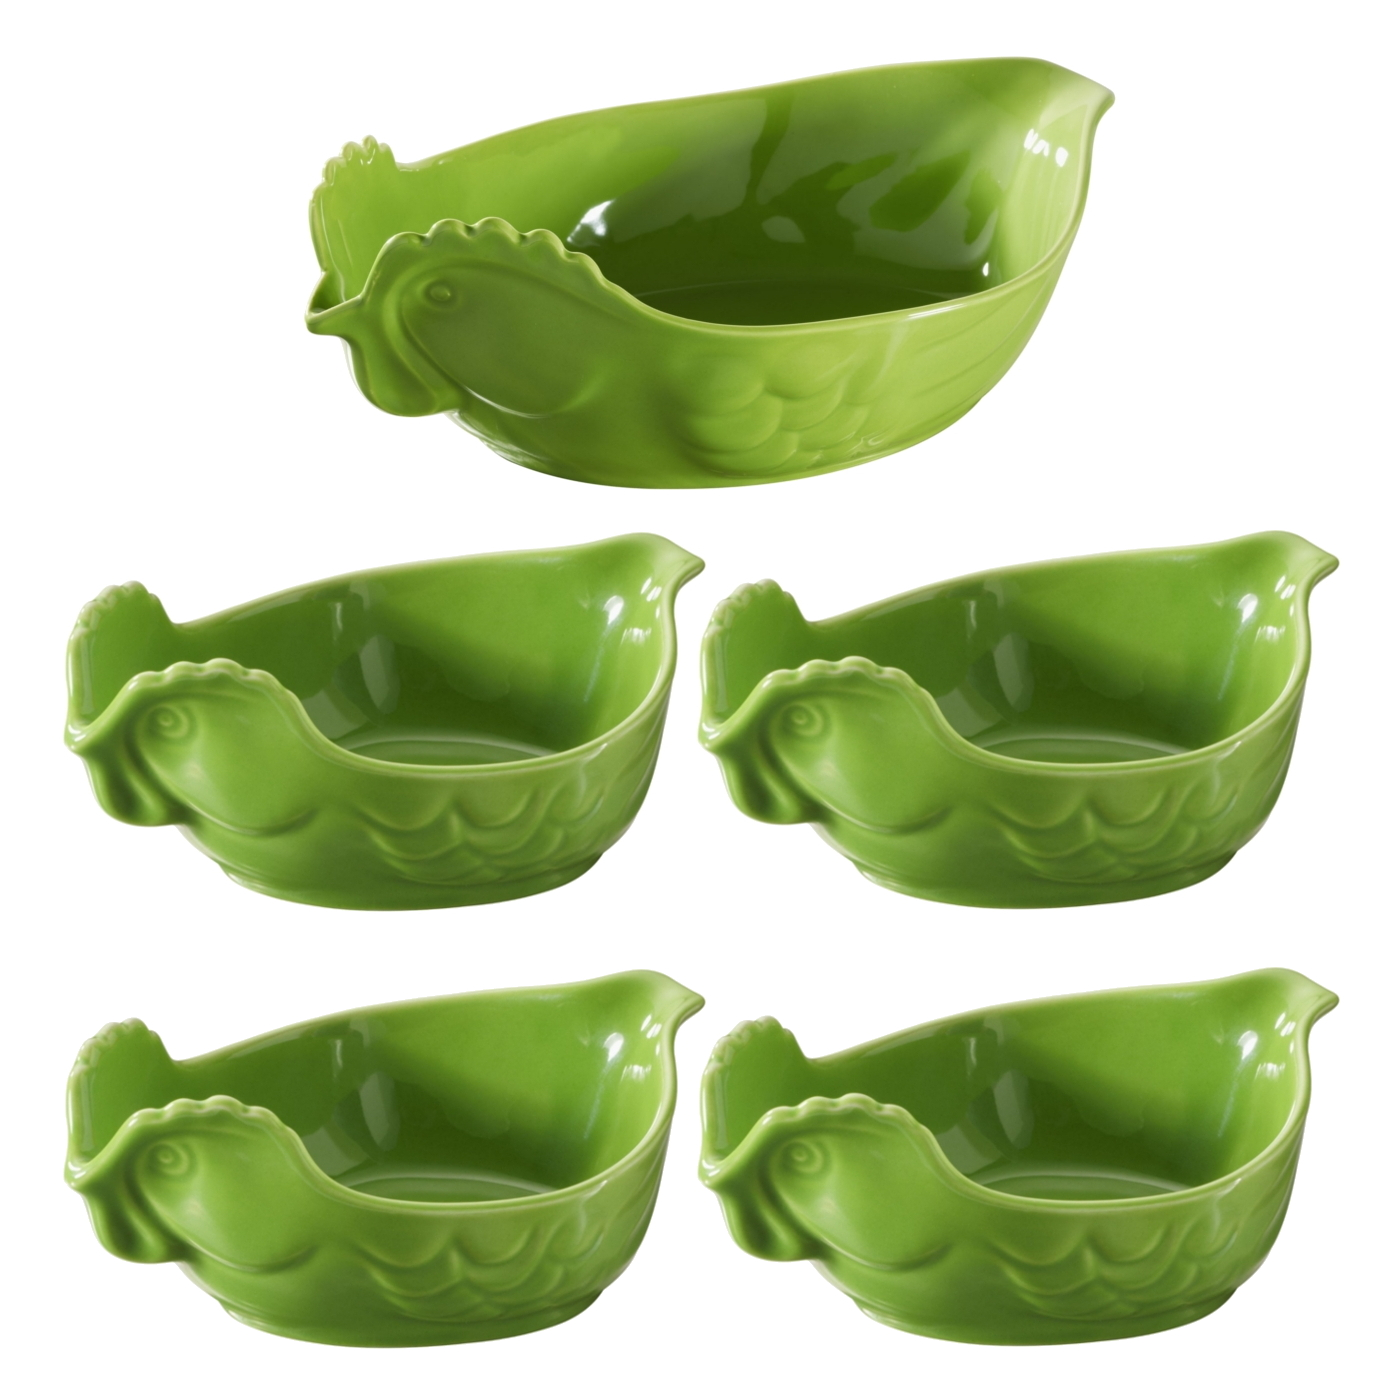 Revol Five Piece Happy Cuisine Poultry Roaster and Four Poultry Side Dishes Lime Green